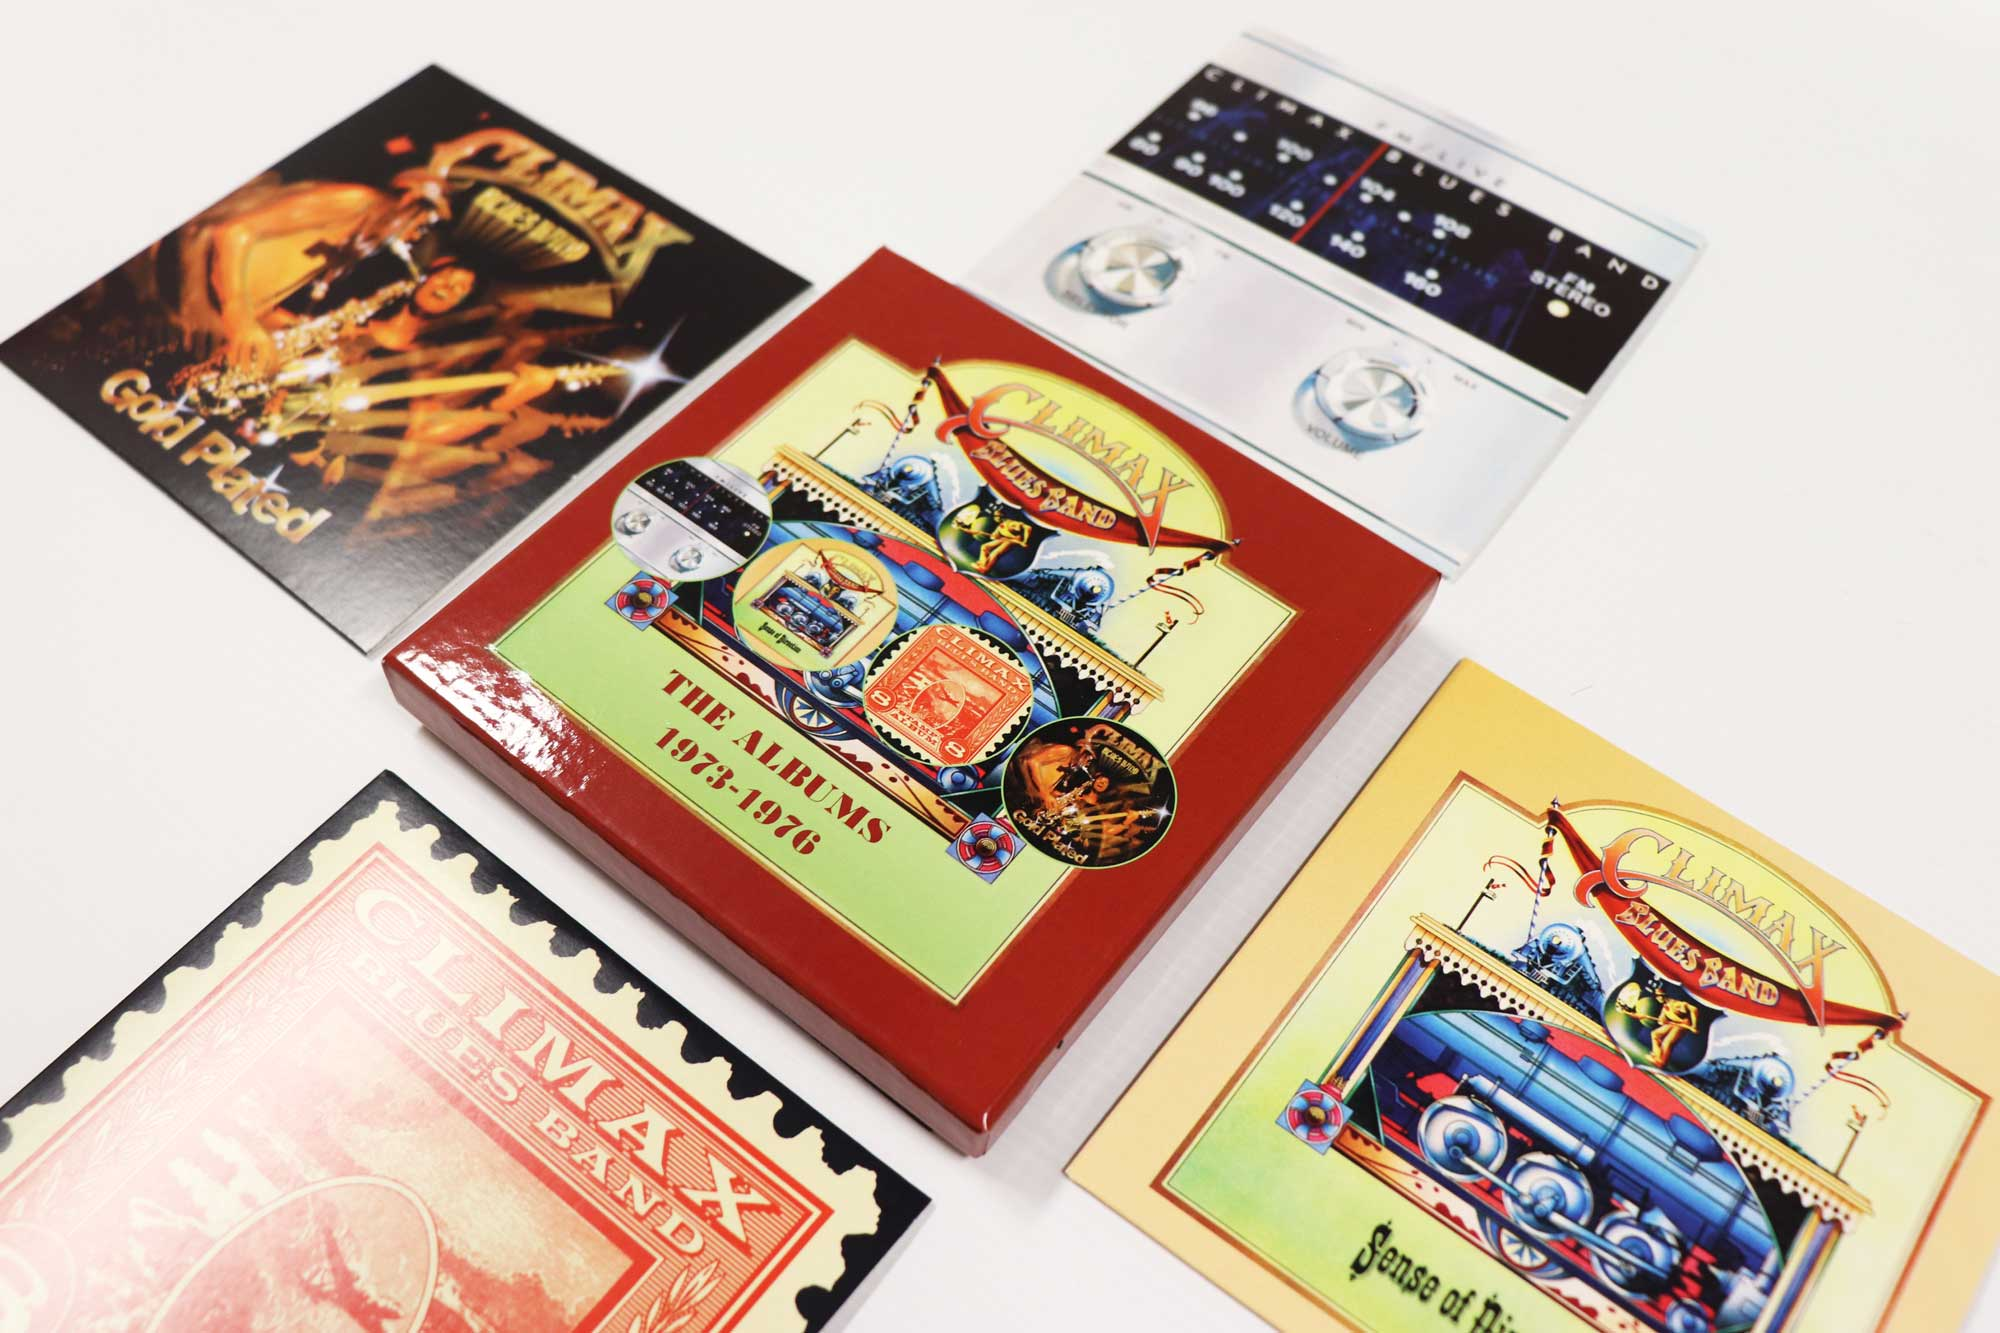 Climax Blues Band: The Albums 1973-1976, 4CD Remastered Boxset Edition